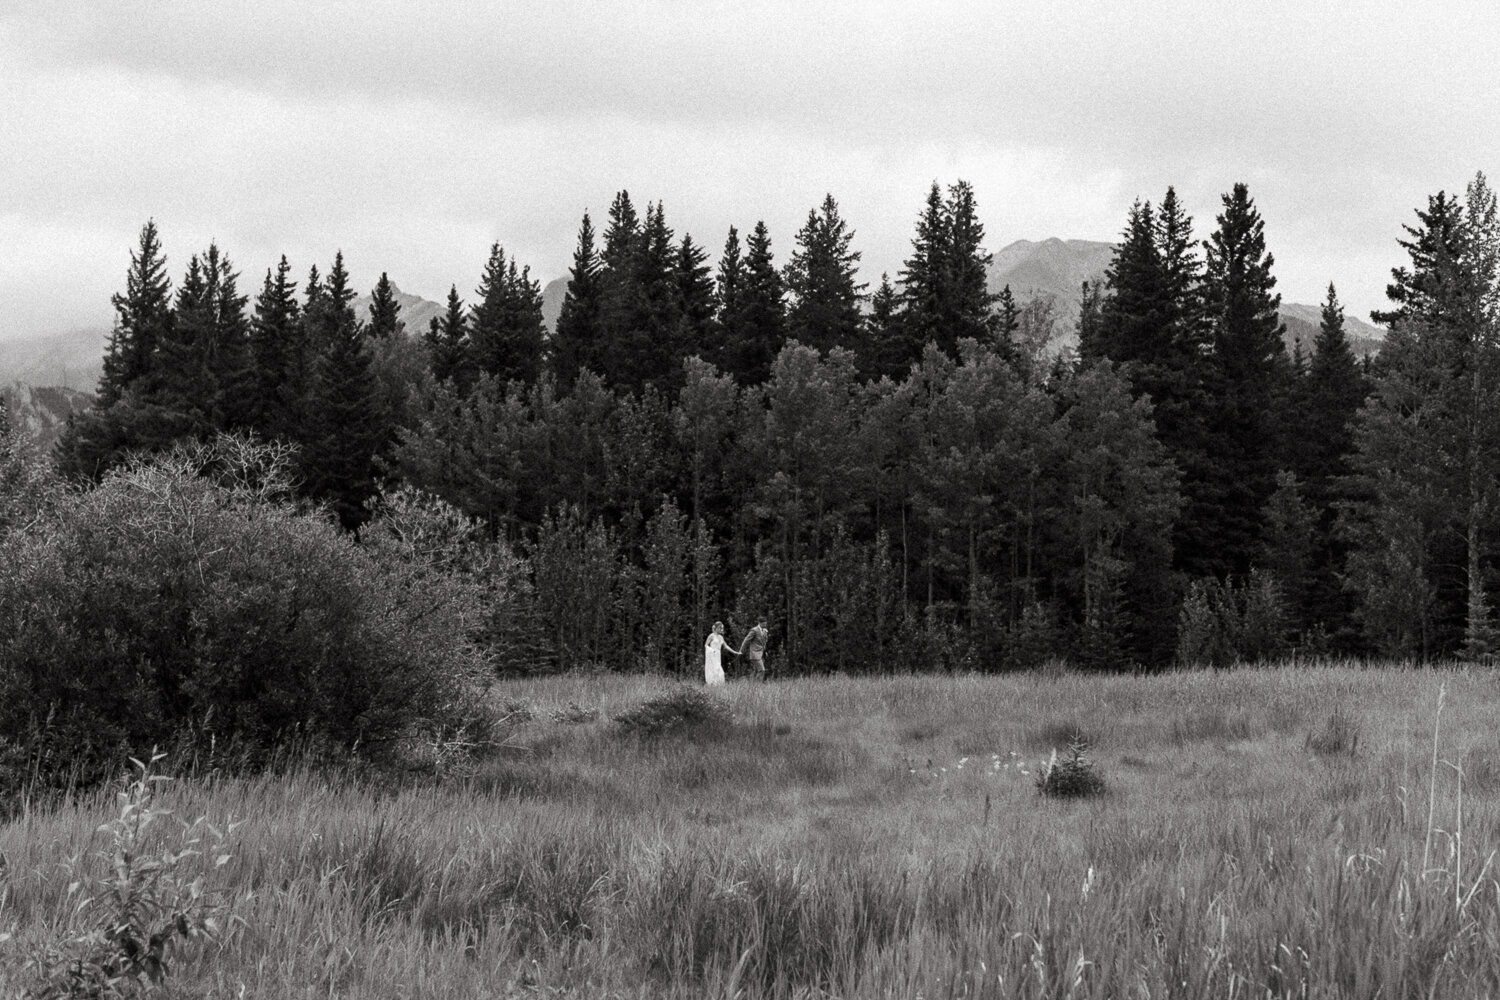 106-Canmore-Alberta-Real-Wedding-Best-Wedding-Photographers-178.JPG